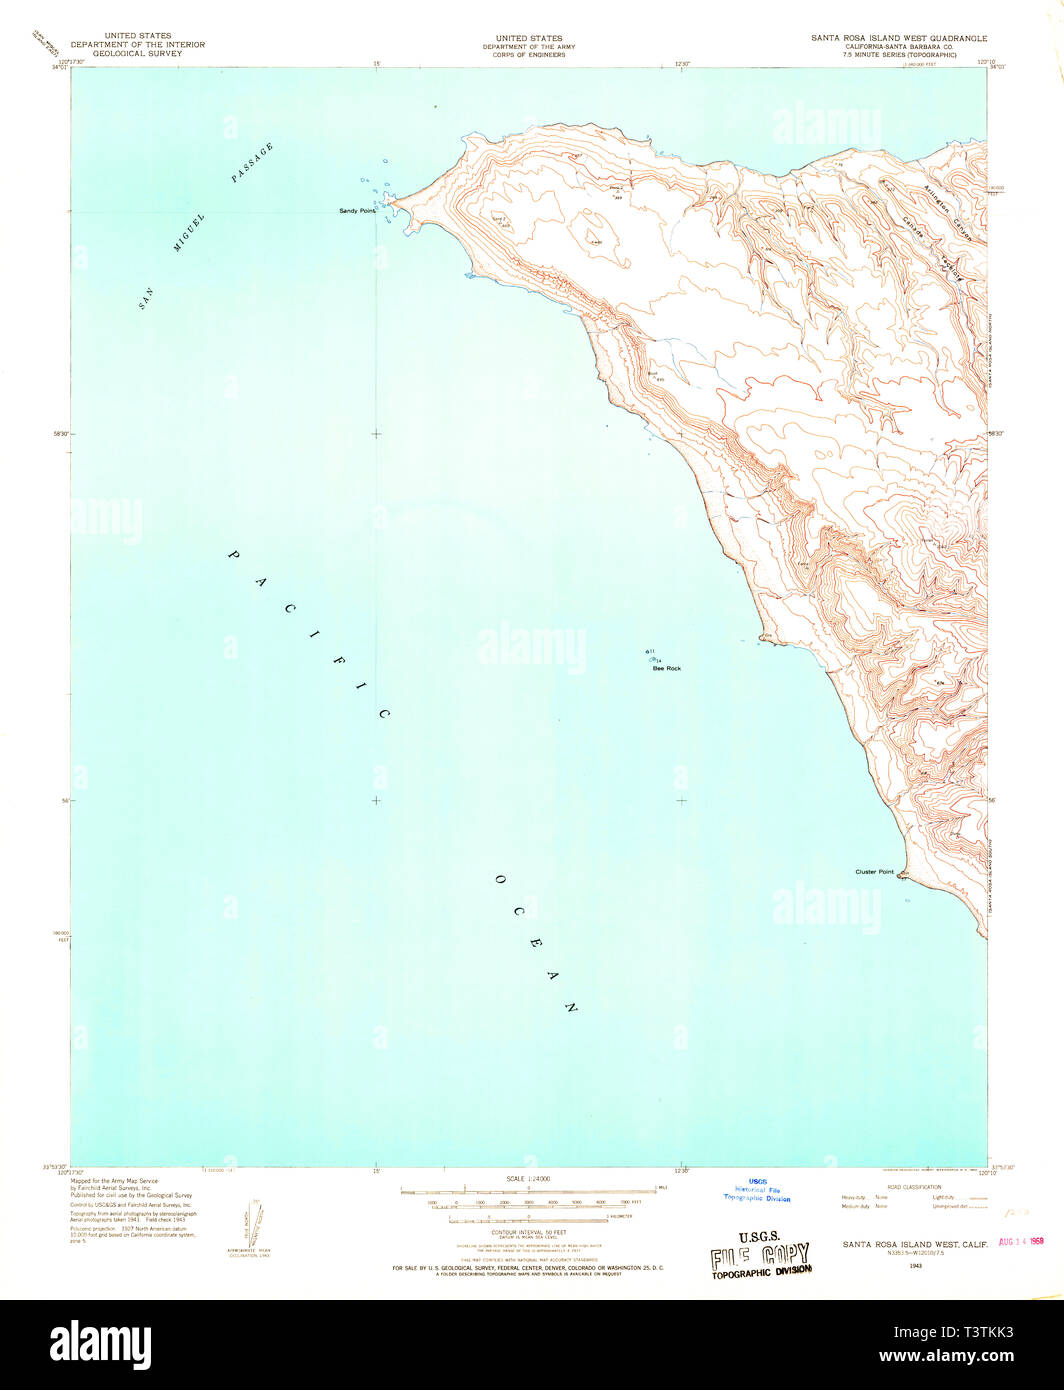 Santa Rosa California Map.Usgs Topo Map California Ca Santa Rosa Island West 300311 1943 24000